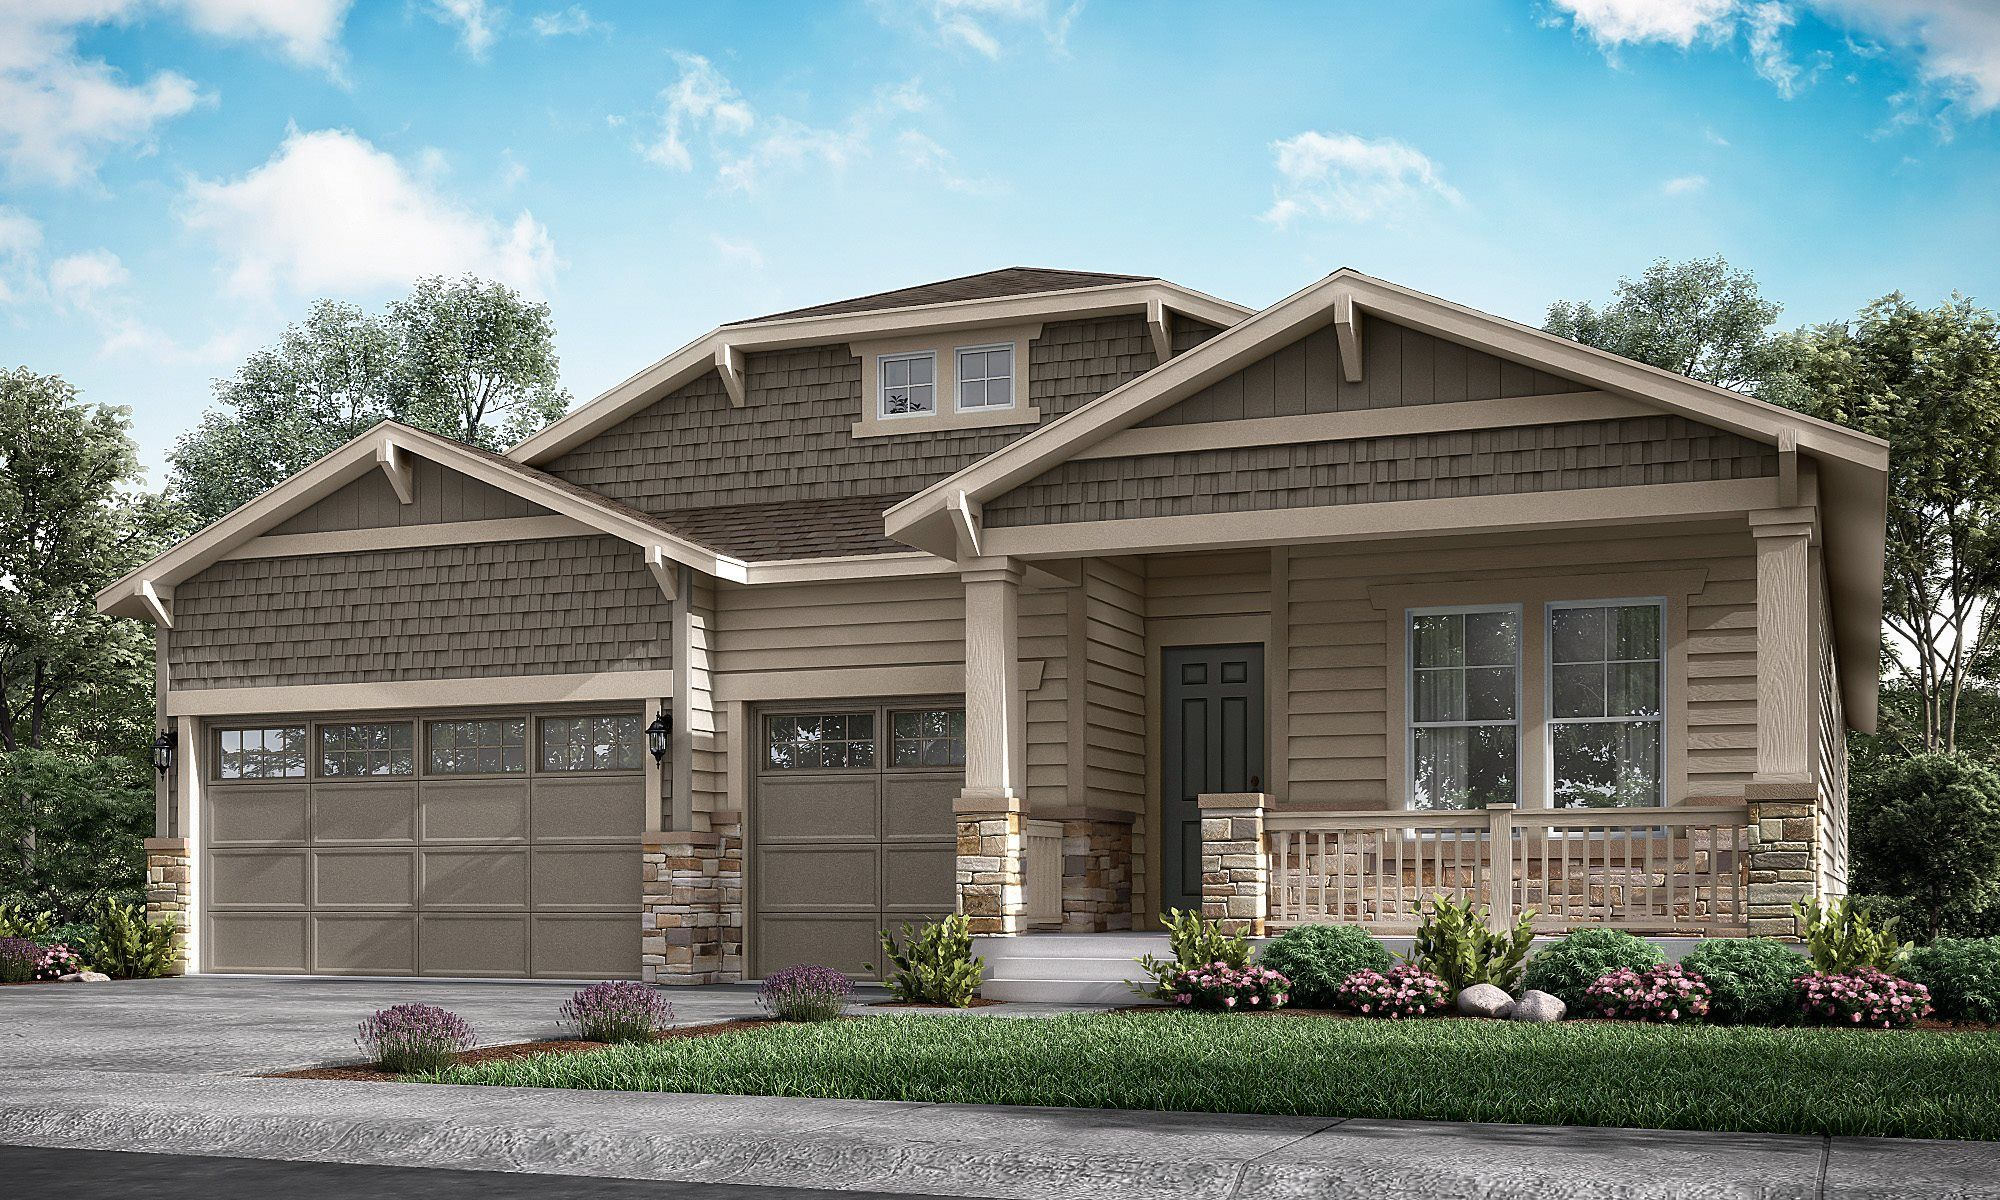 Single Family for Active at Heritage Todd Creek: The Heritage Collection - Gable 8052 E. 151st Place Thornton, Colorado 80602 United States